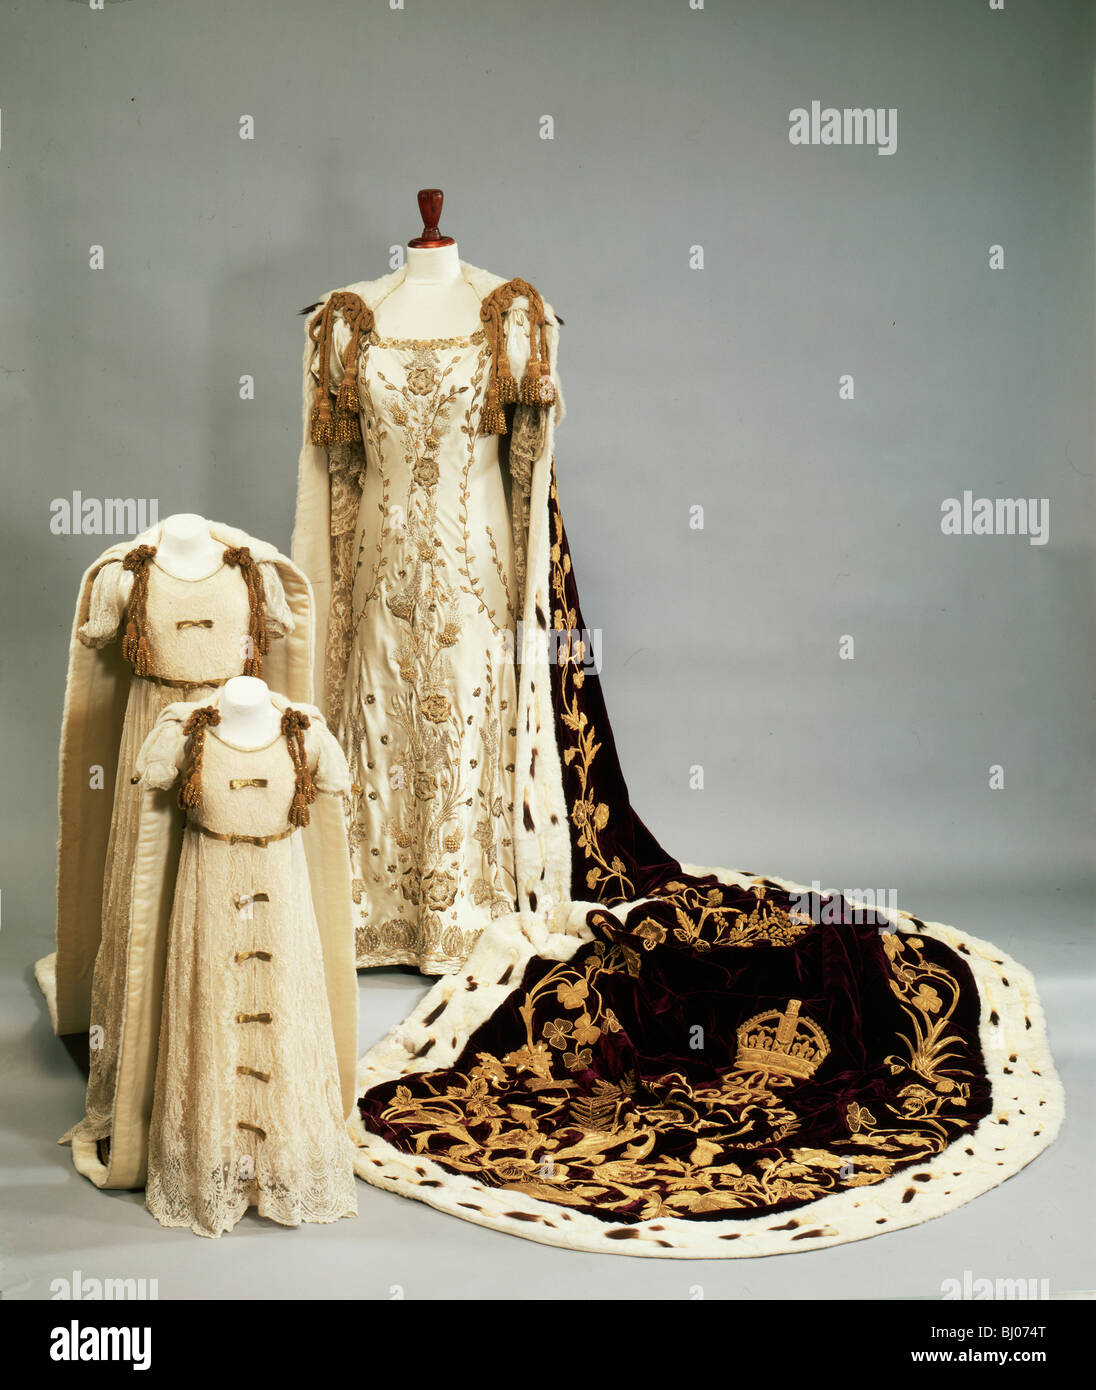 Coronation dresses and robes worn by the Queen Mother and Princesses  Elizabeth and Margaret, 1937.